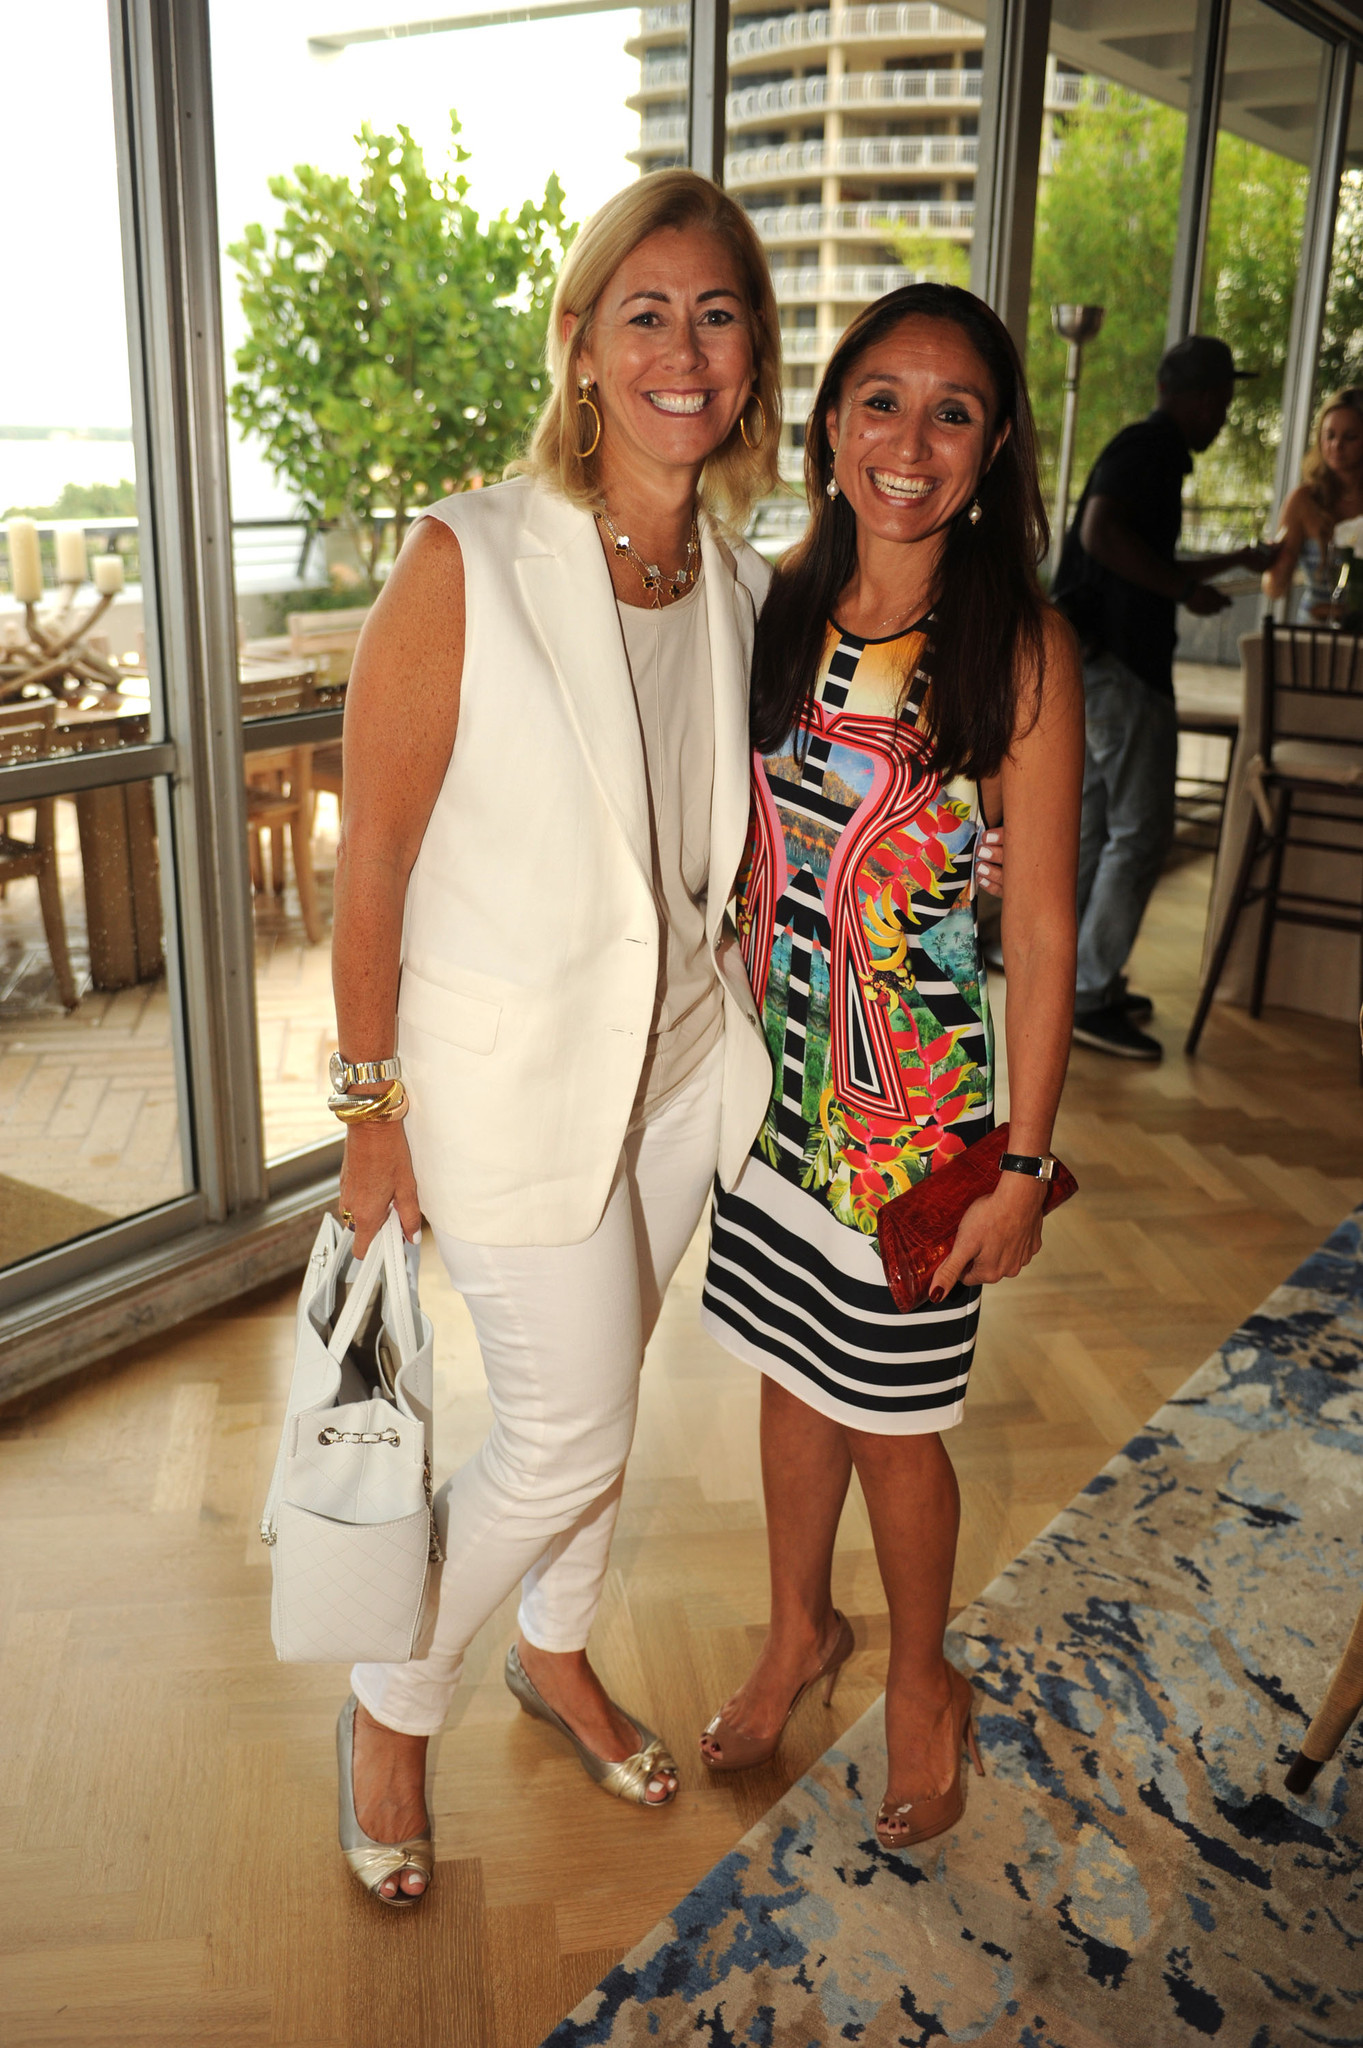 Society Scene photos - Fashionably Conscious Collection Party at Park Grove Sales Gallery in Coconut Grove on July 16